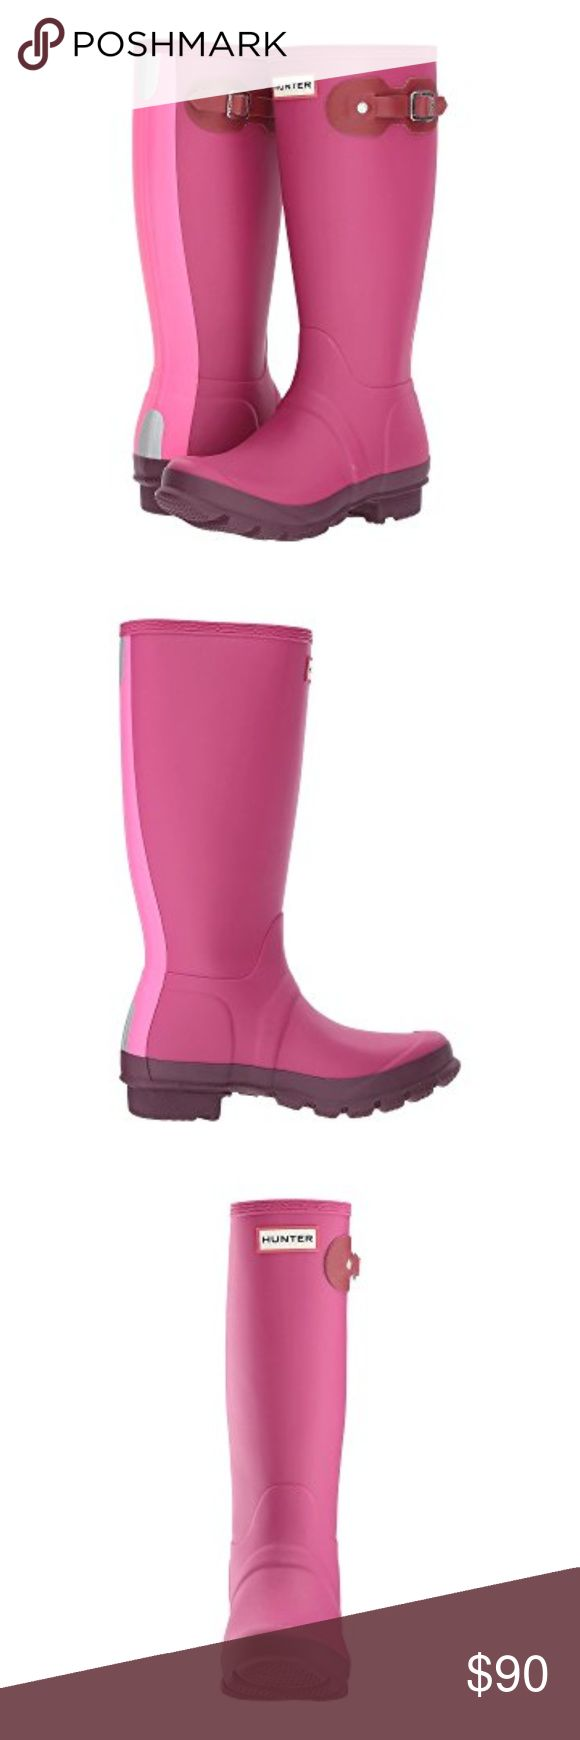 Hunter Boots Kids These are the cutest Pink Hunter Boots Ever! Brand New! Hunter Shoes Boots